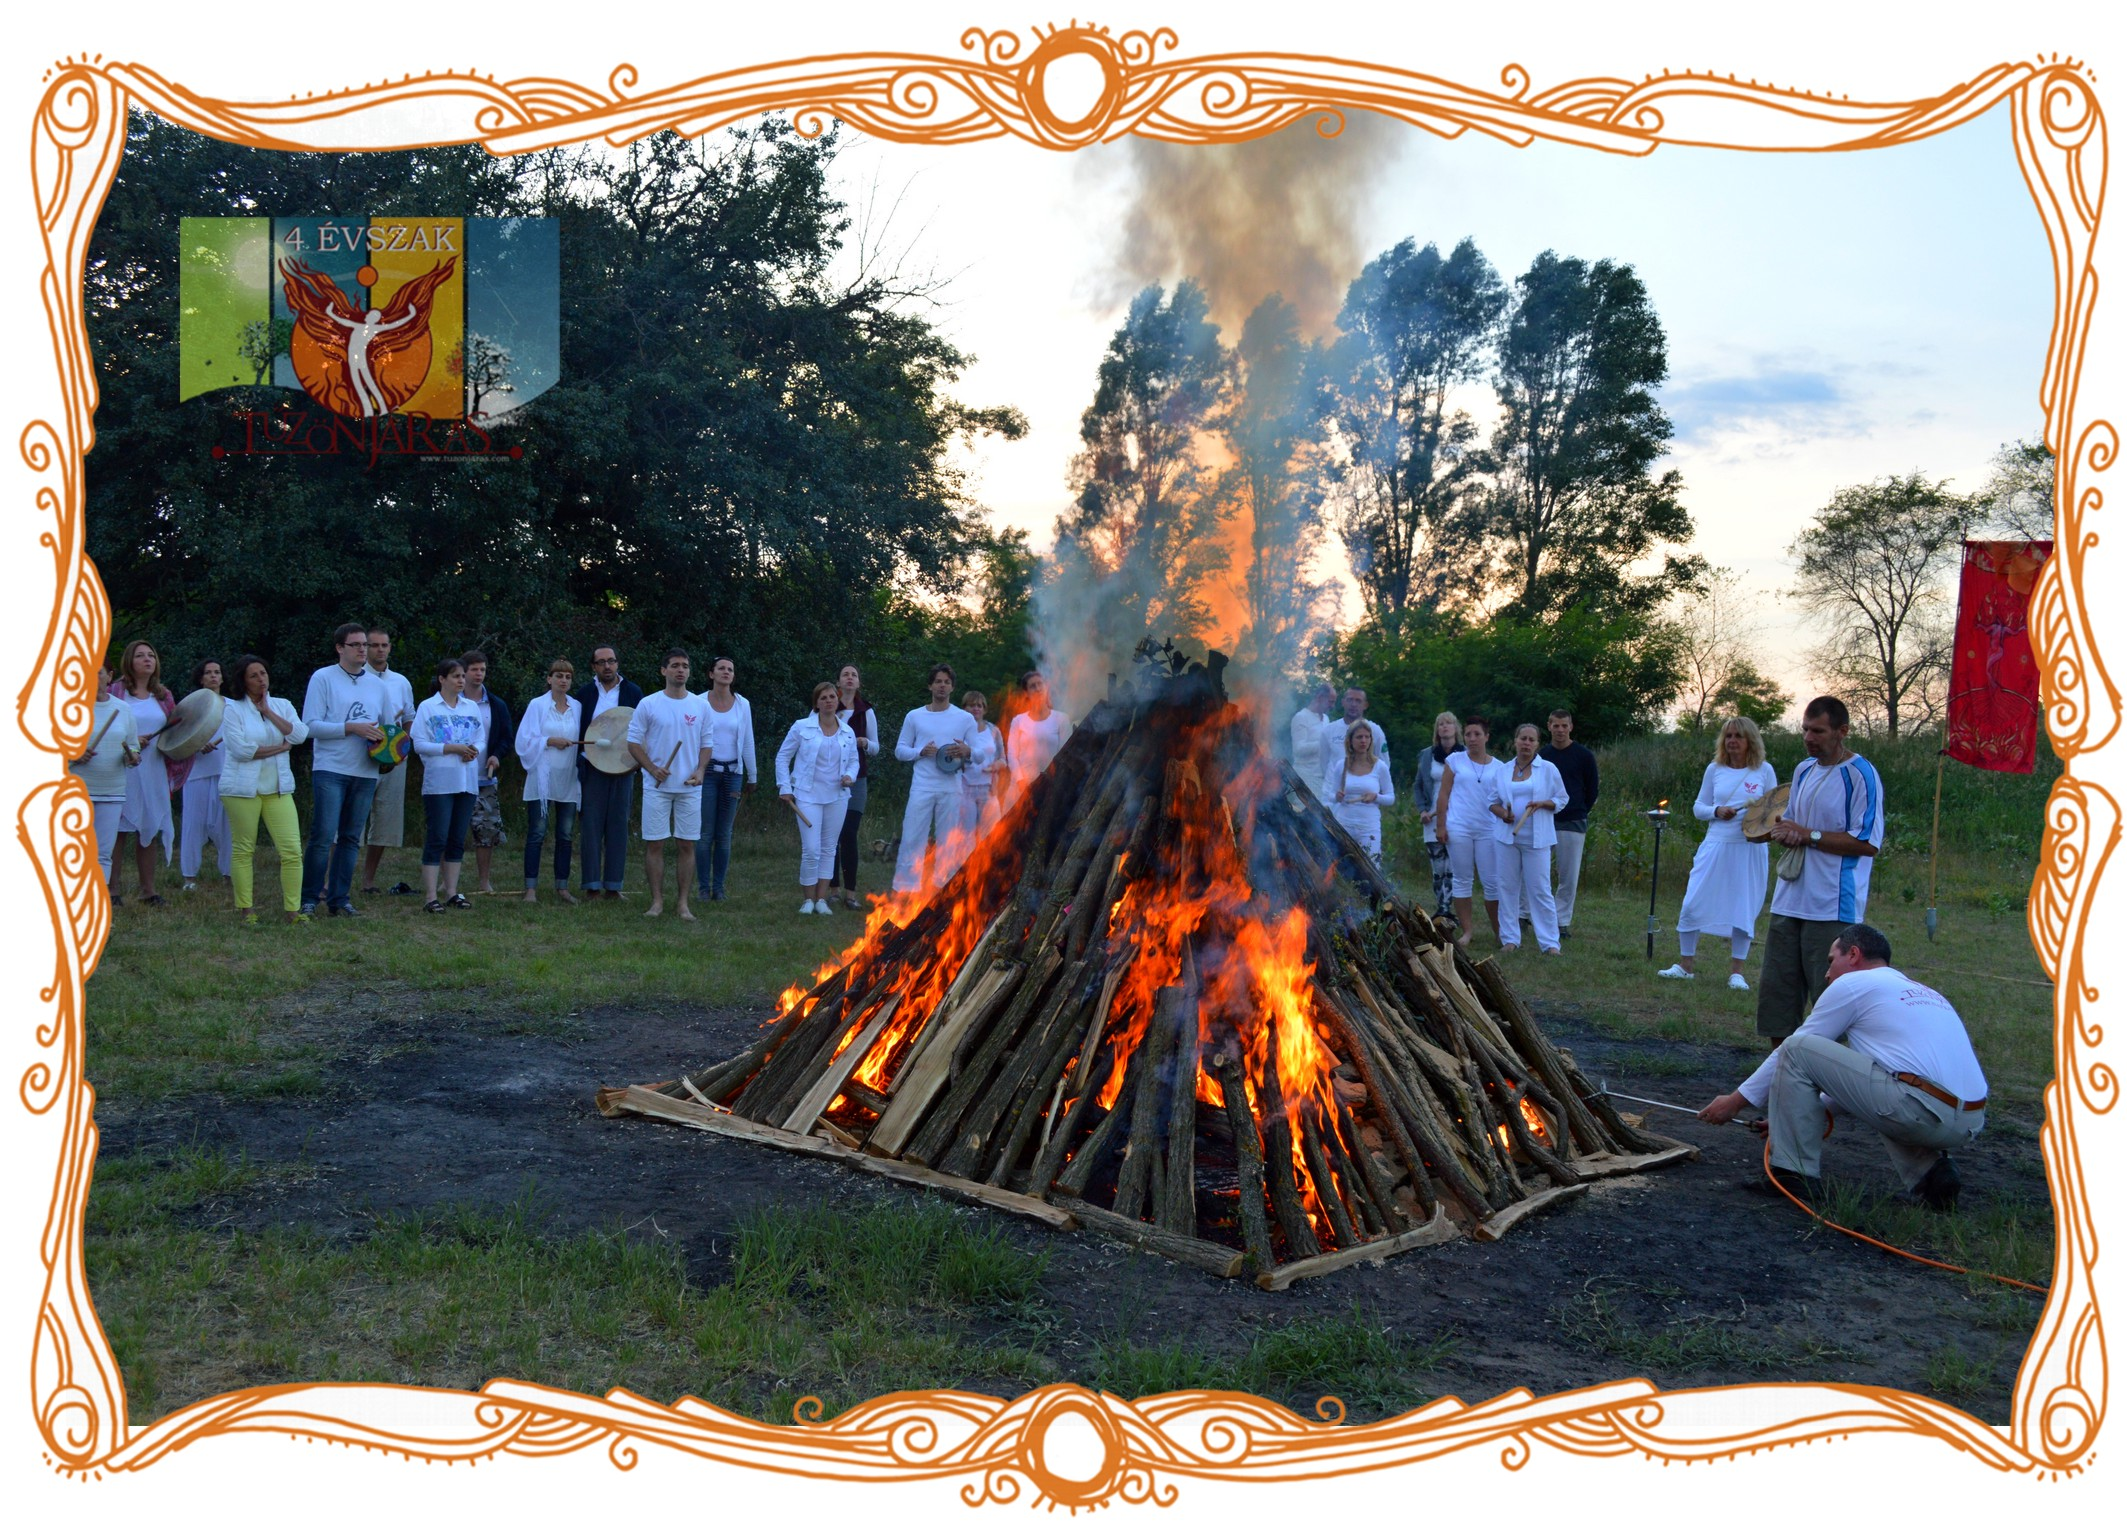 2015. Summer - 4 Seasons Firewalking